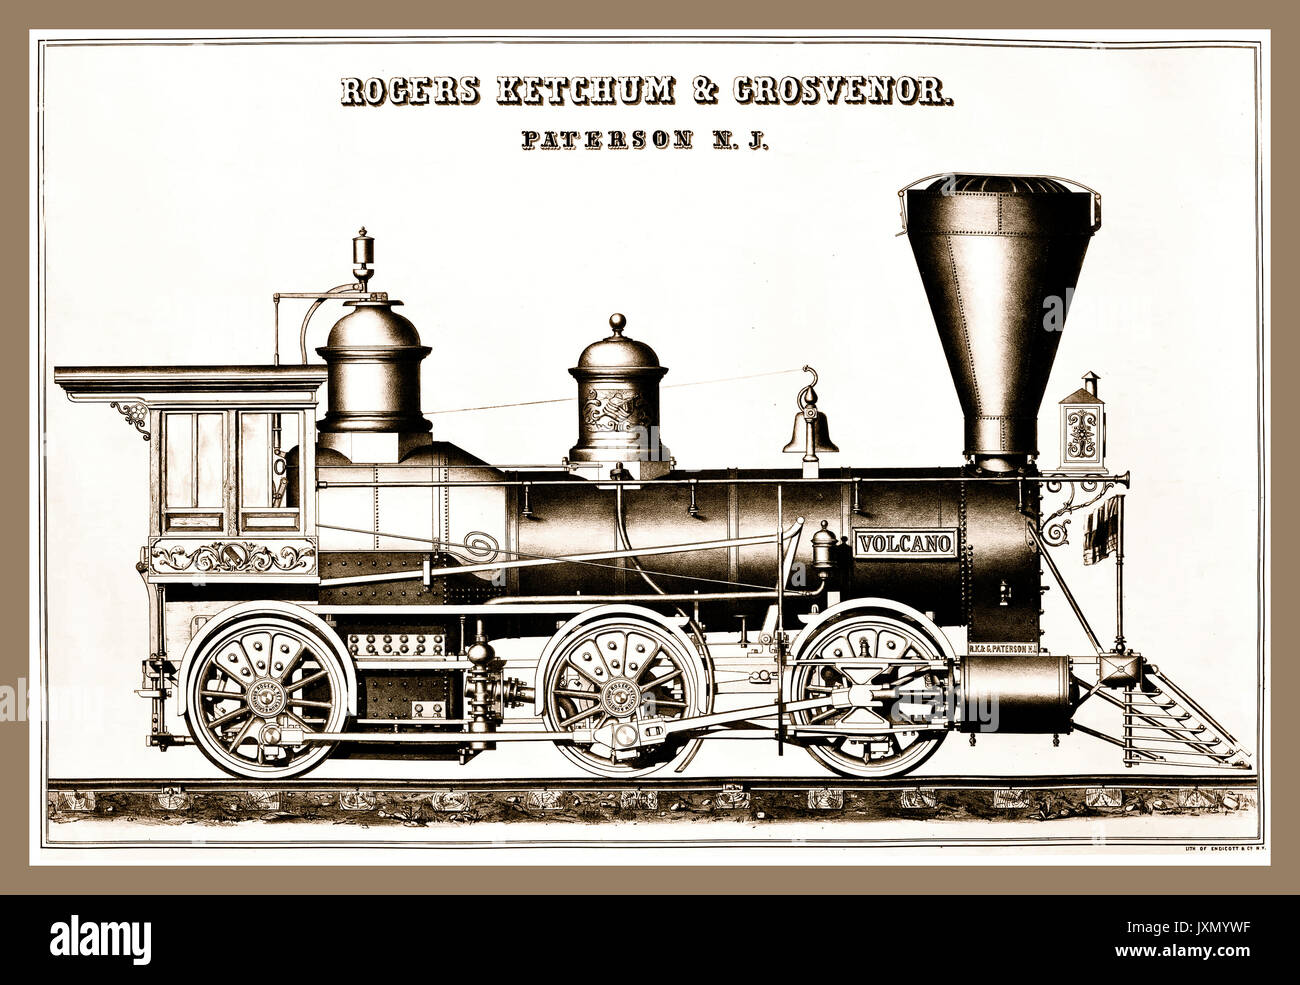 Steam Locomotive 1800s Stock Photos & Steam Locomotive 1800s Stock